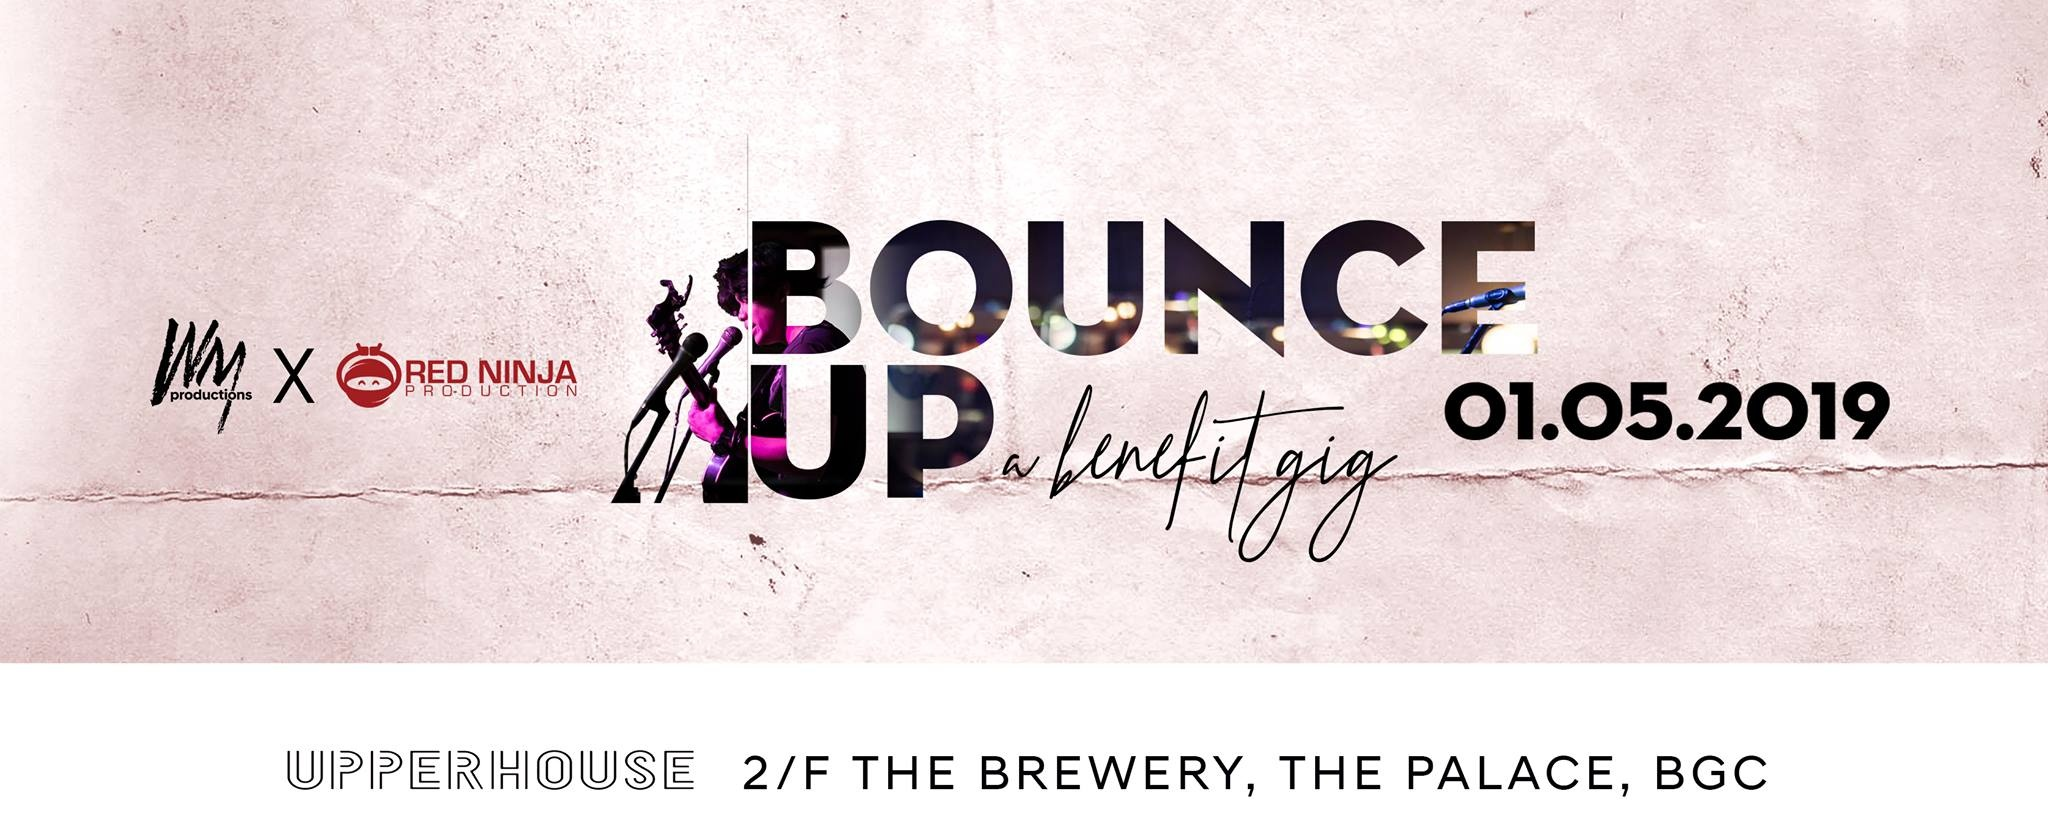 Bounce Up | A Benefit Gig